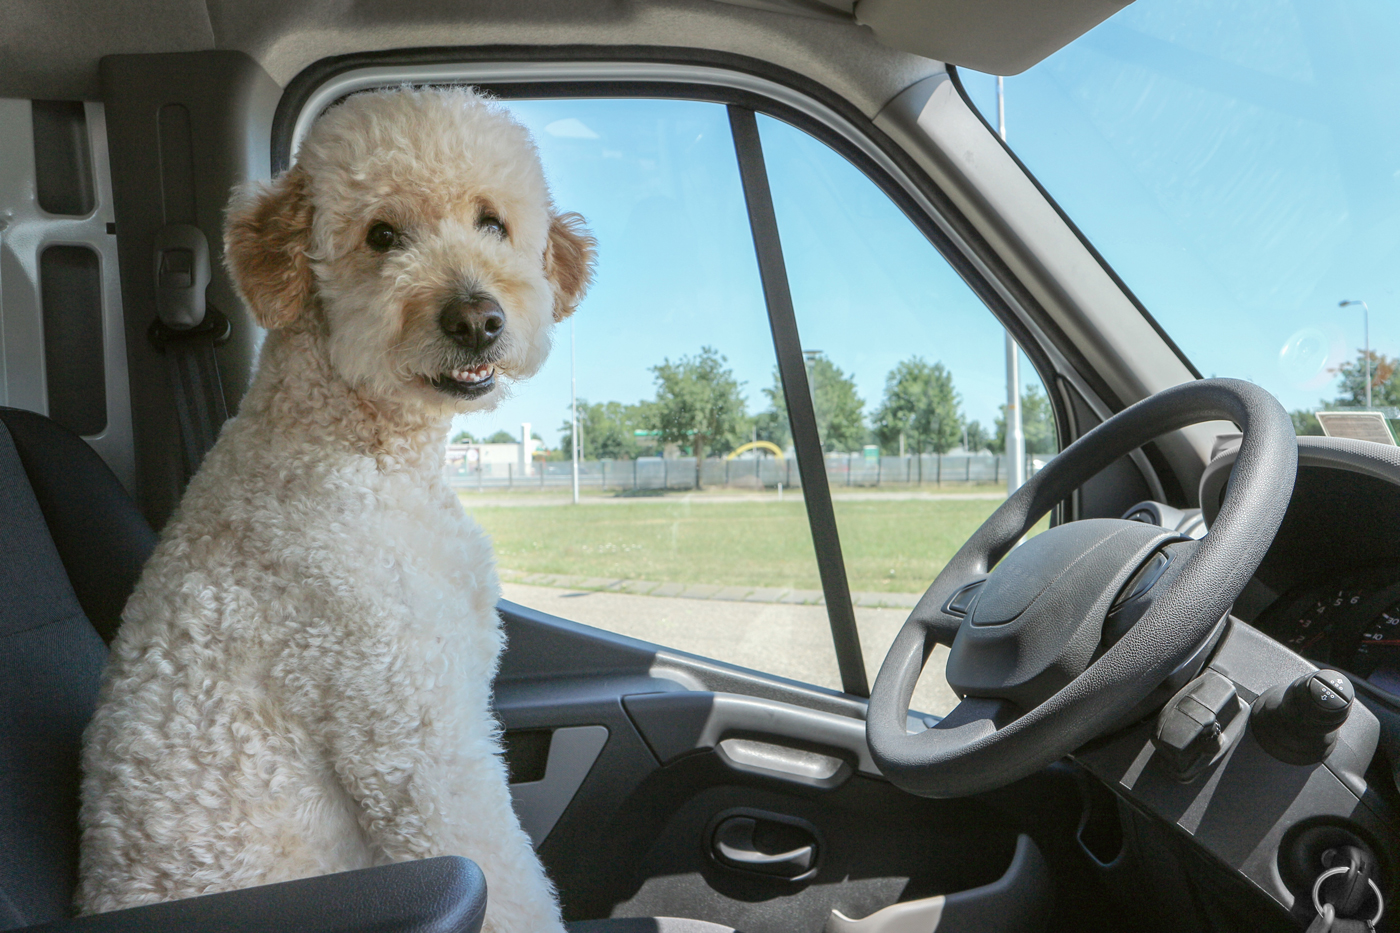 A fluffy white dog sitting in the drivers seat of a motrohme